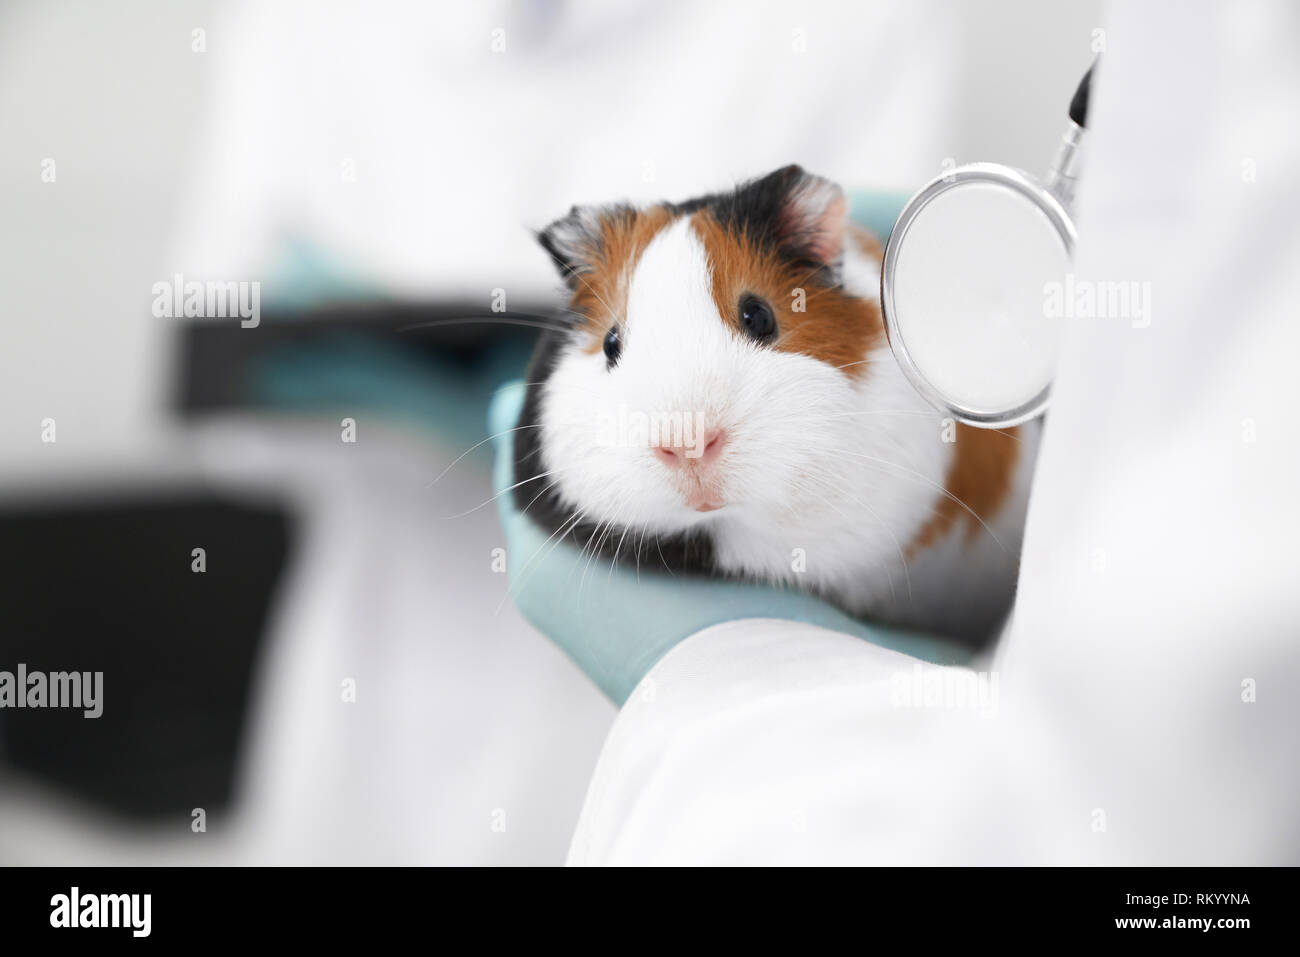 Veterinarian holding little domestic pet in hands. Close up of beautiful white and brown hamster looking at camera. Examination of animals in professional and modern vet clinic. - Stock Image